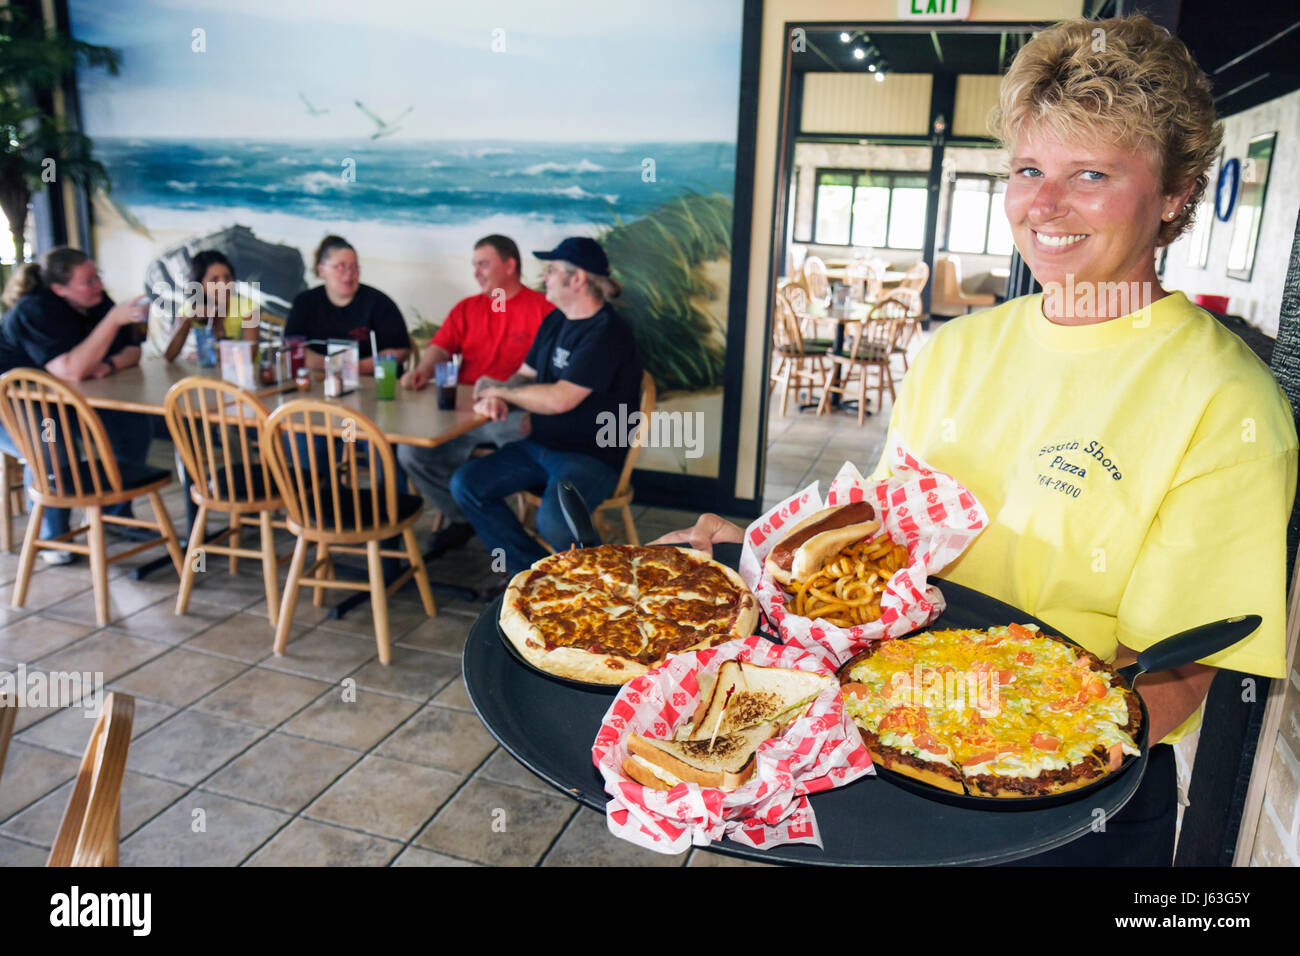 Indiana Portage South Shore Pizza restaurant business food woman waitress tray sandwich hot dog table meal lunch - Stock Image